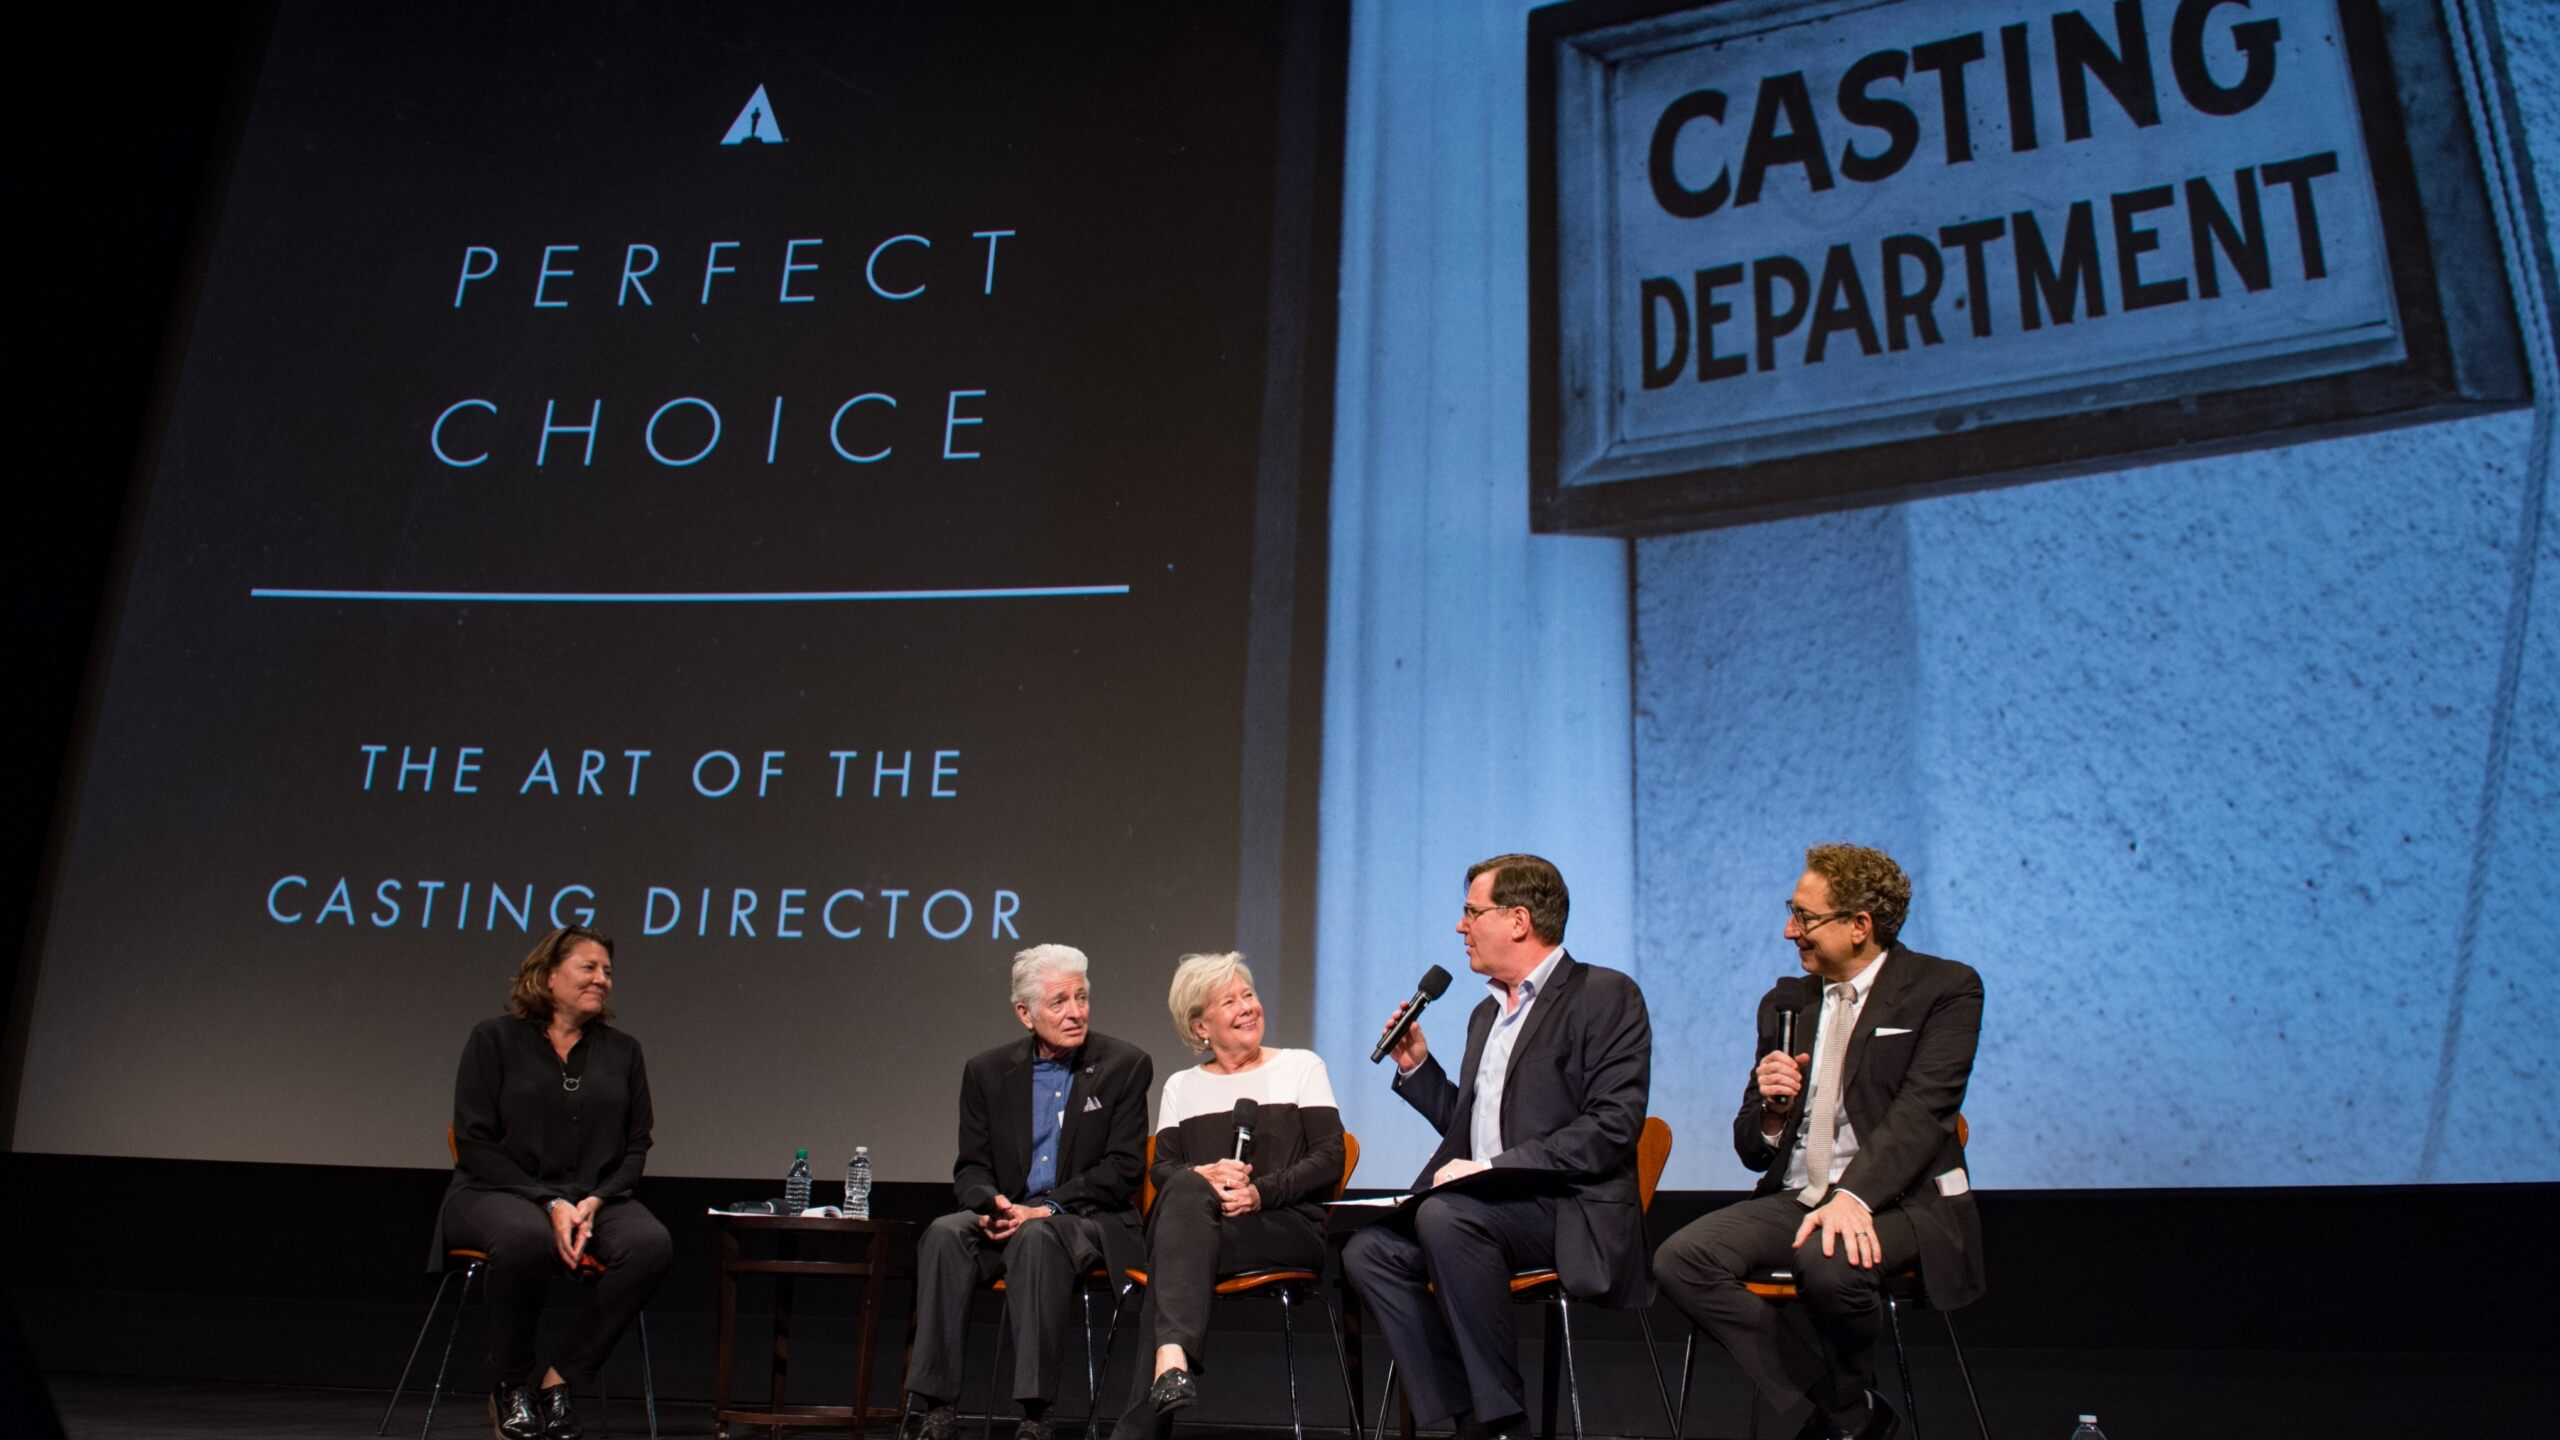 The Art of the Casting Director